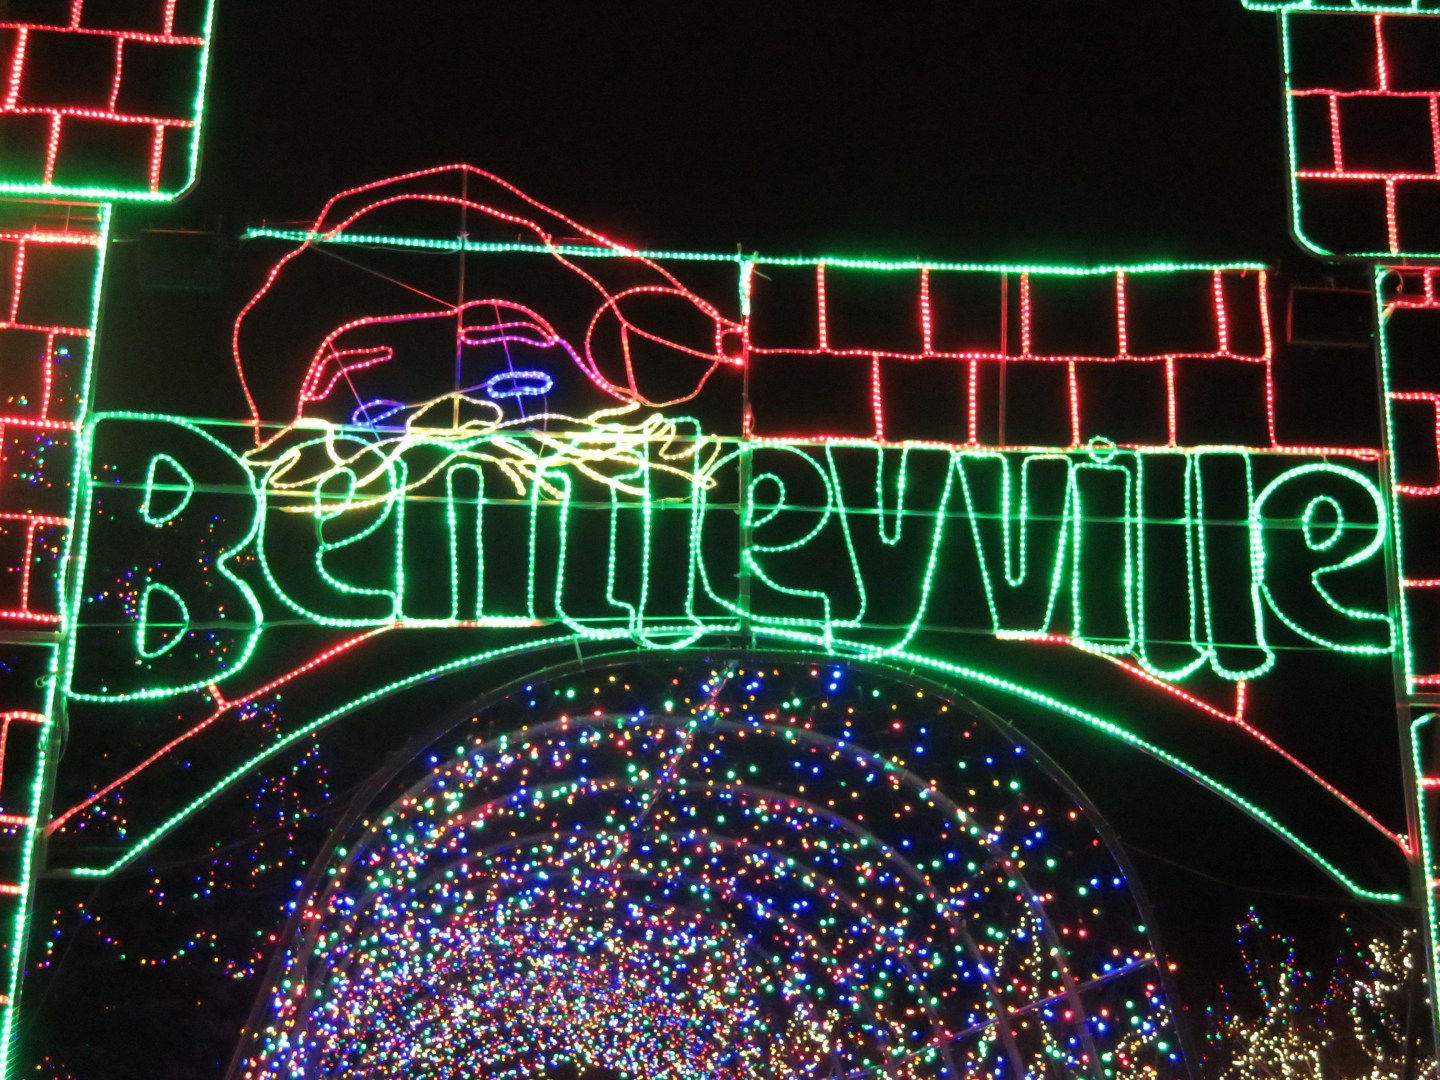 Christmas in Minnesota: 5 Places to Find Holiday Cheer 1